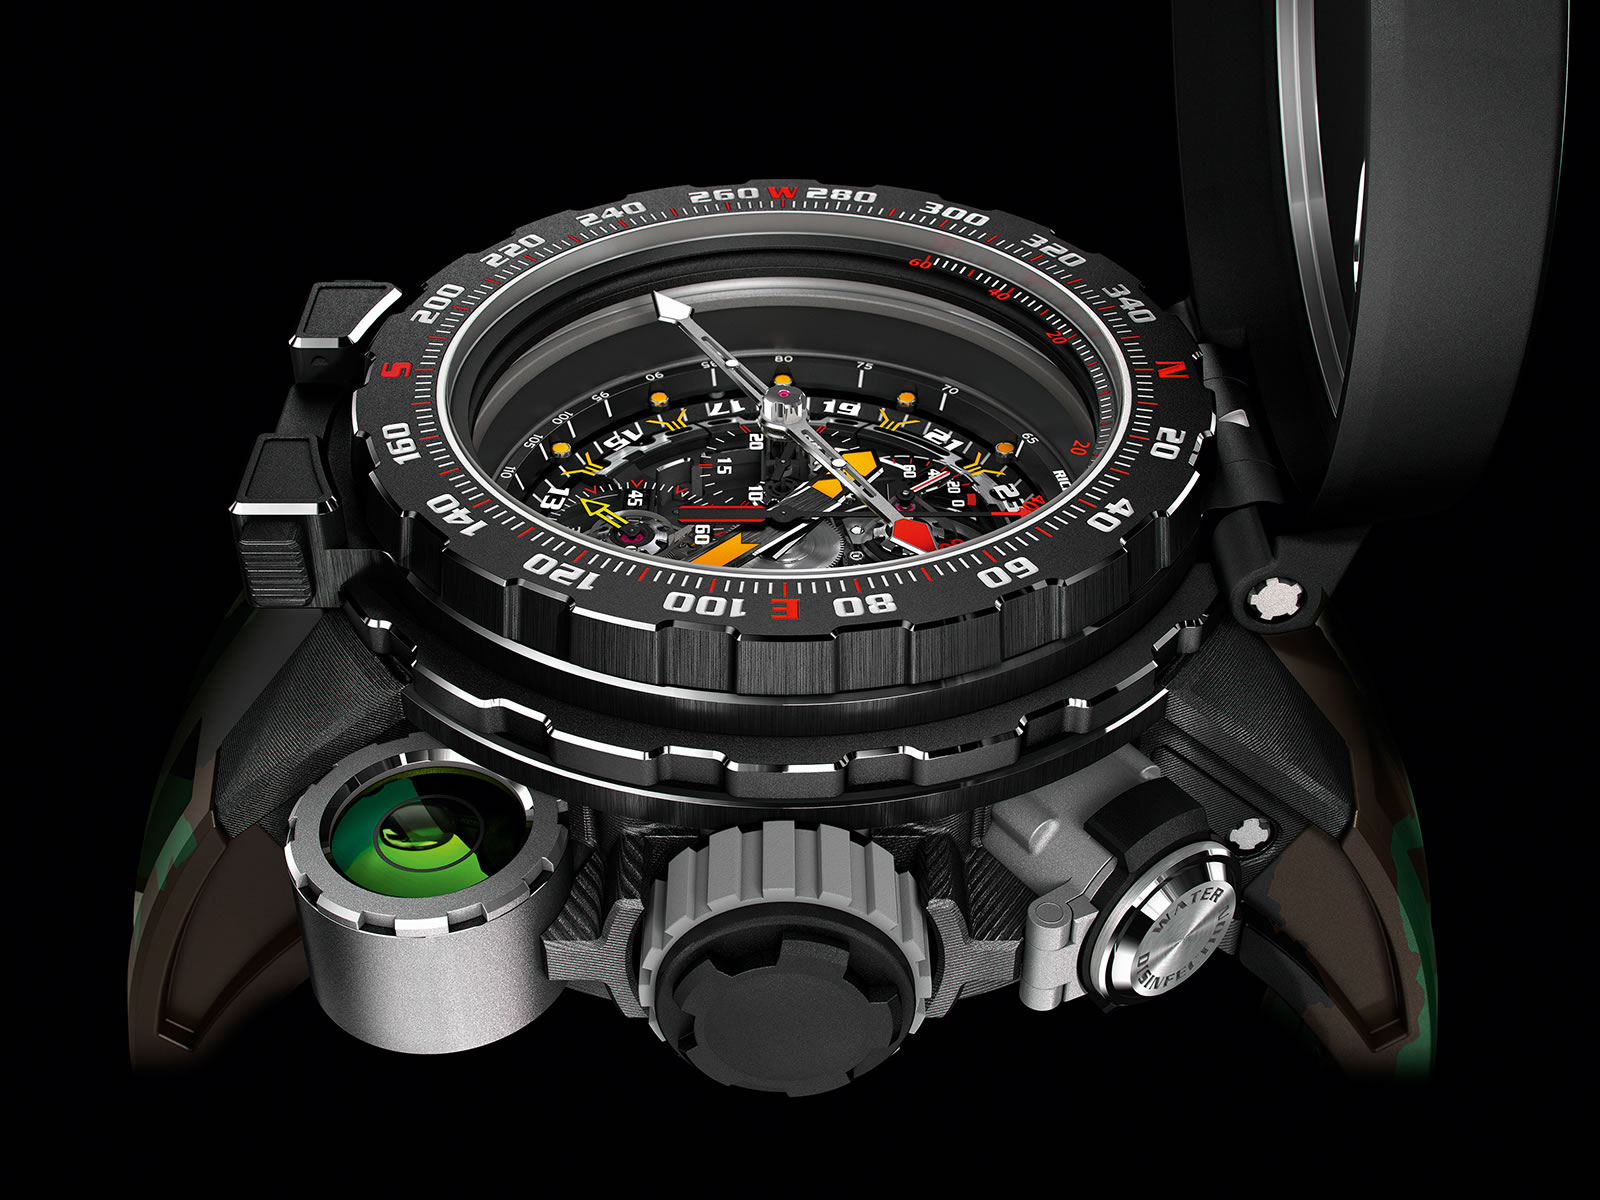 richard-mille-rm-25-01-tourbillon-adventure-sylvester-stallone-5-.jpg